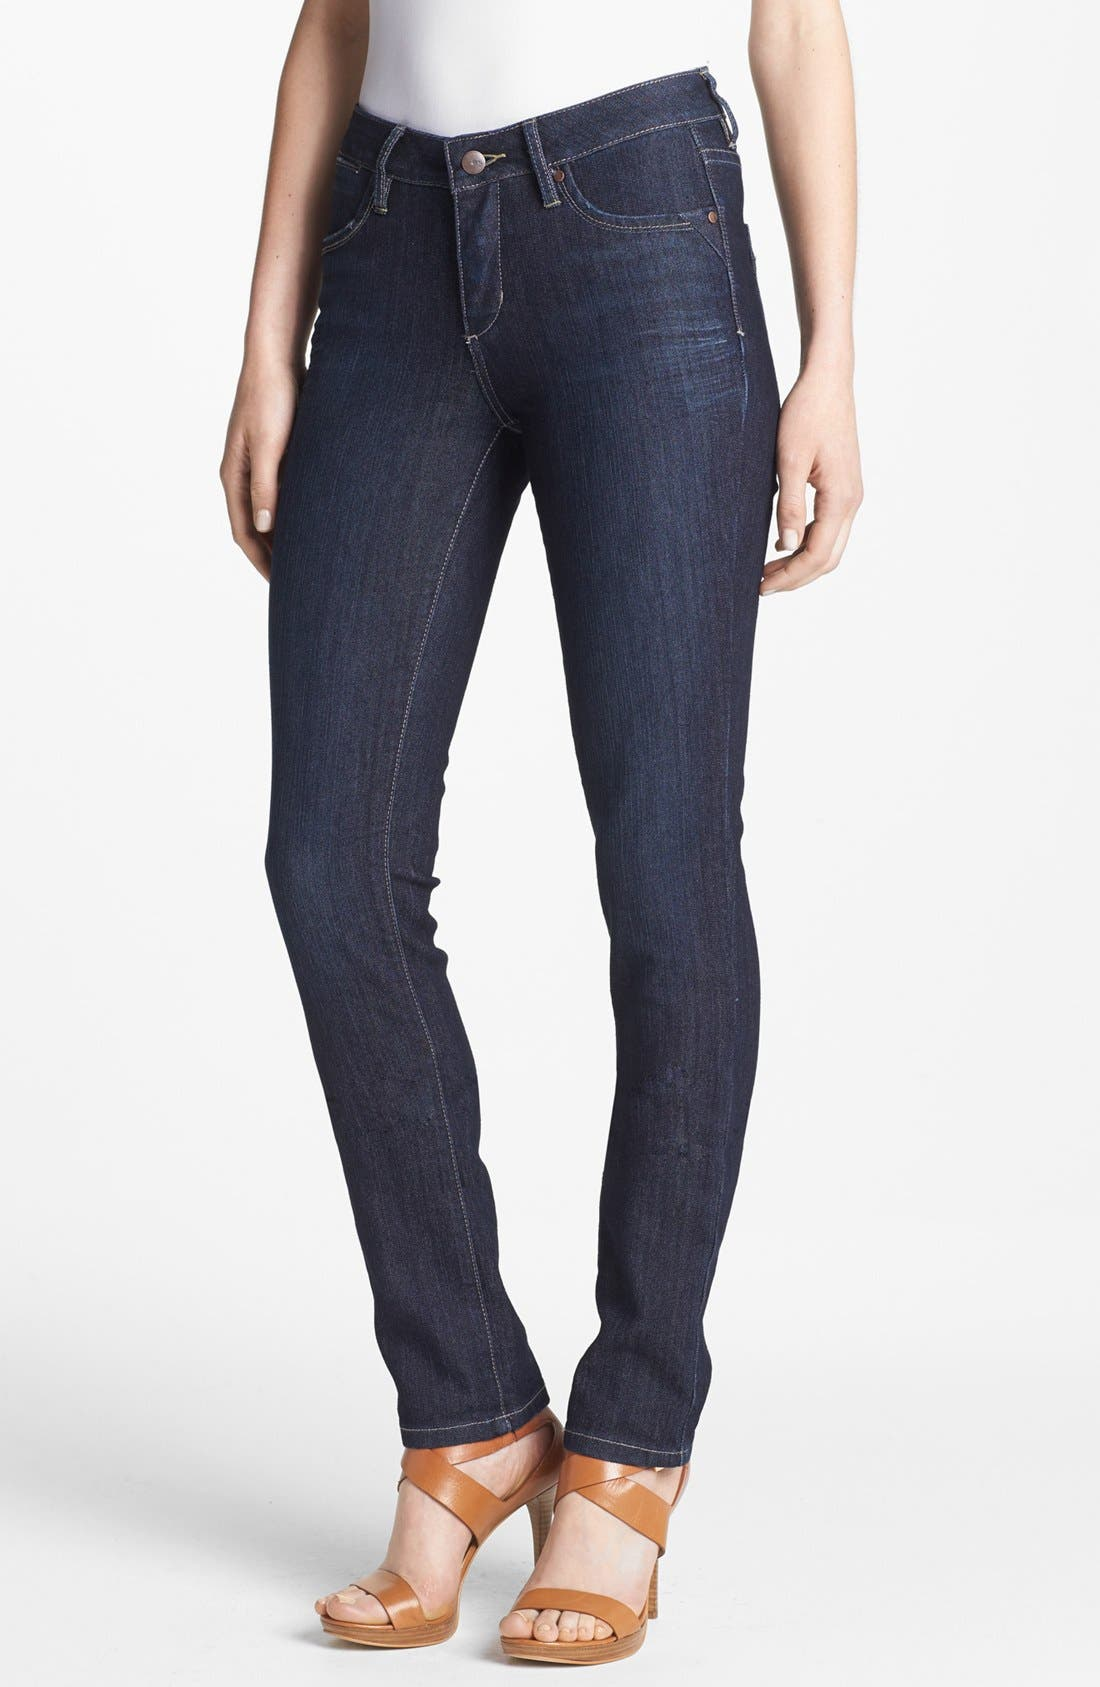 Alternate Image 1 Selected - Jag Jeans 'New Jane' Slim Stretch Jeans